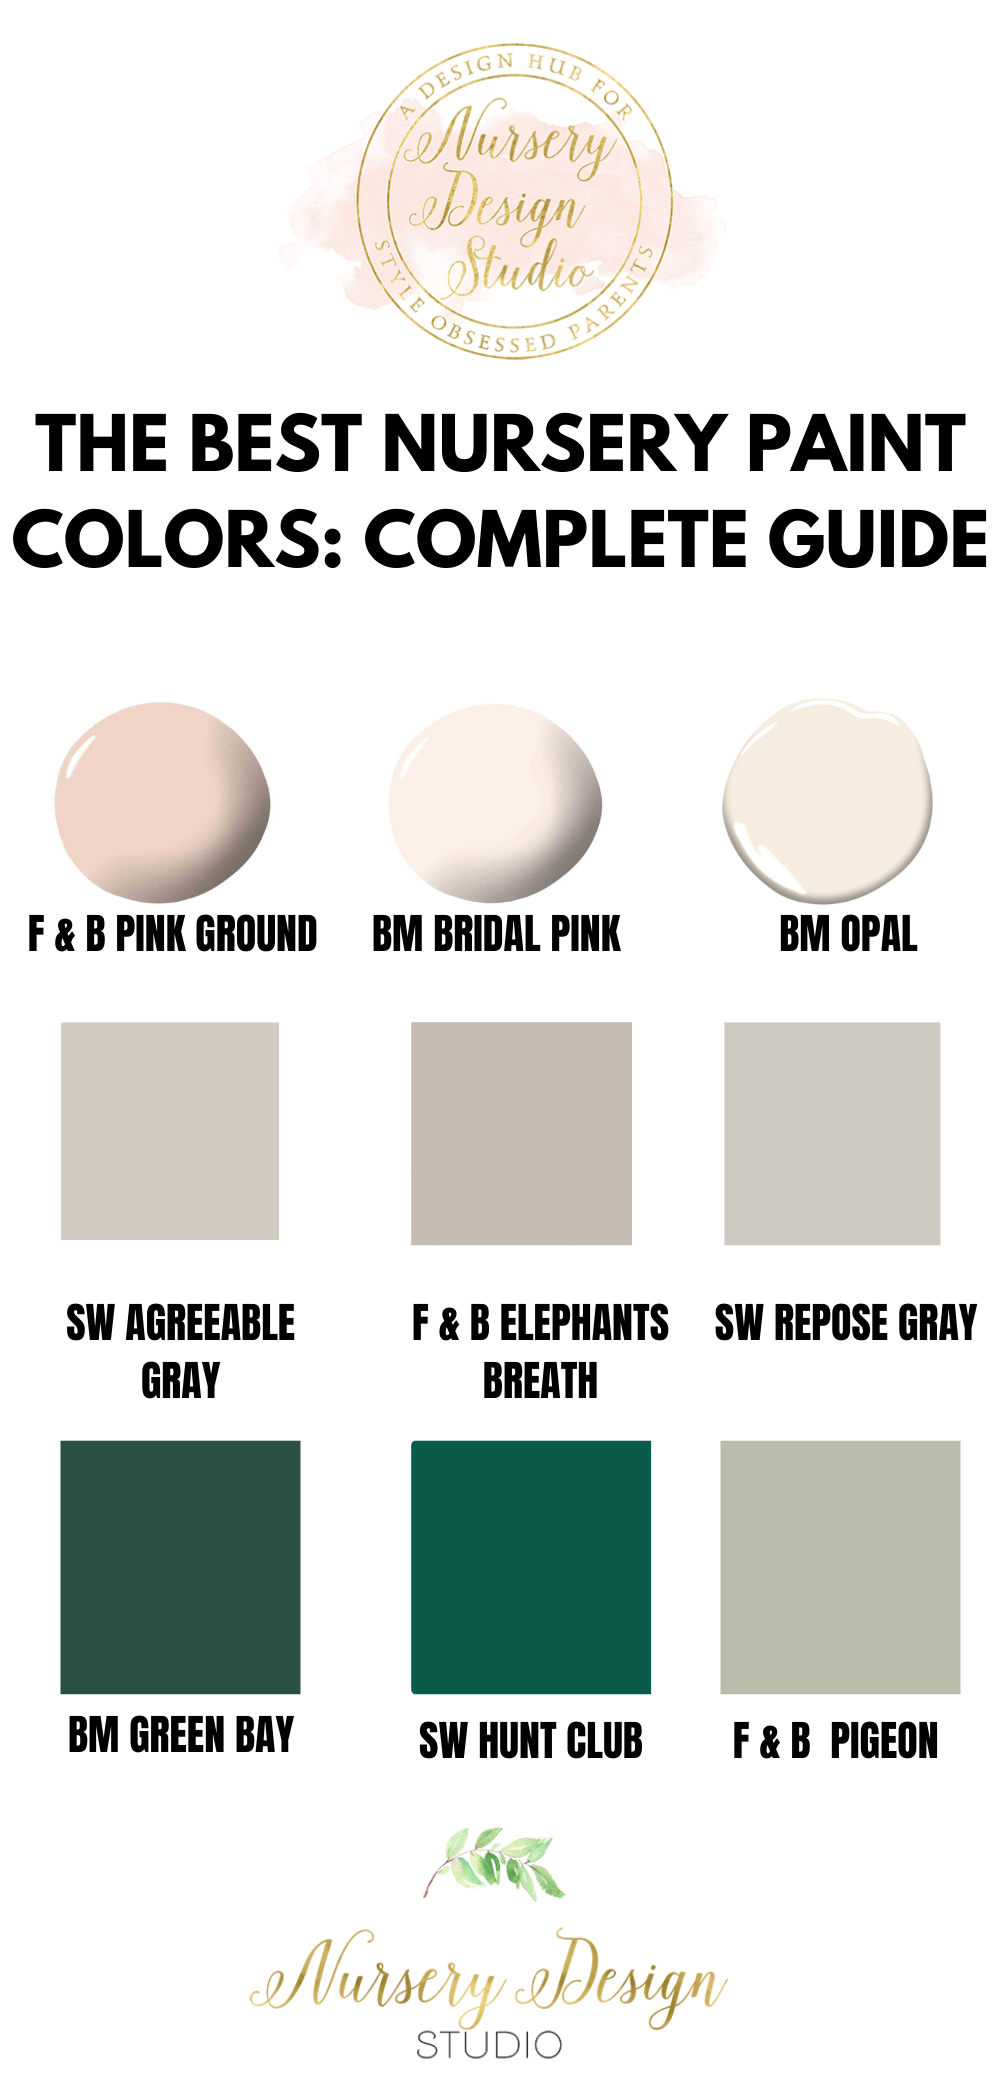 THE BEST NURSERY PAINT COLORS: COMPLETE GUIDE